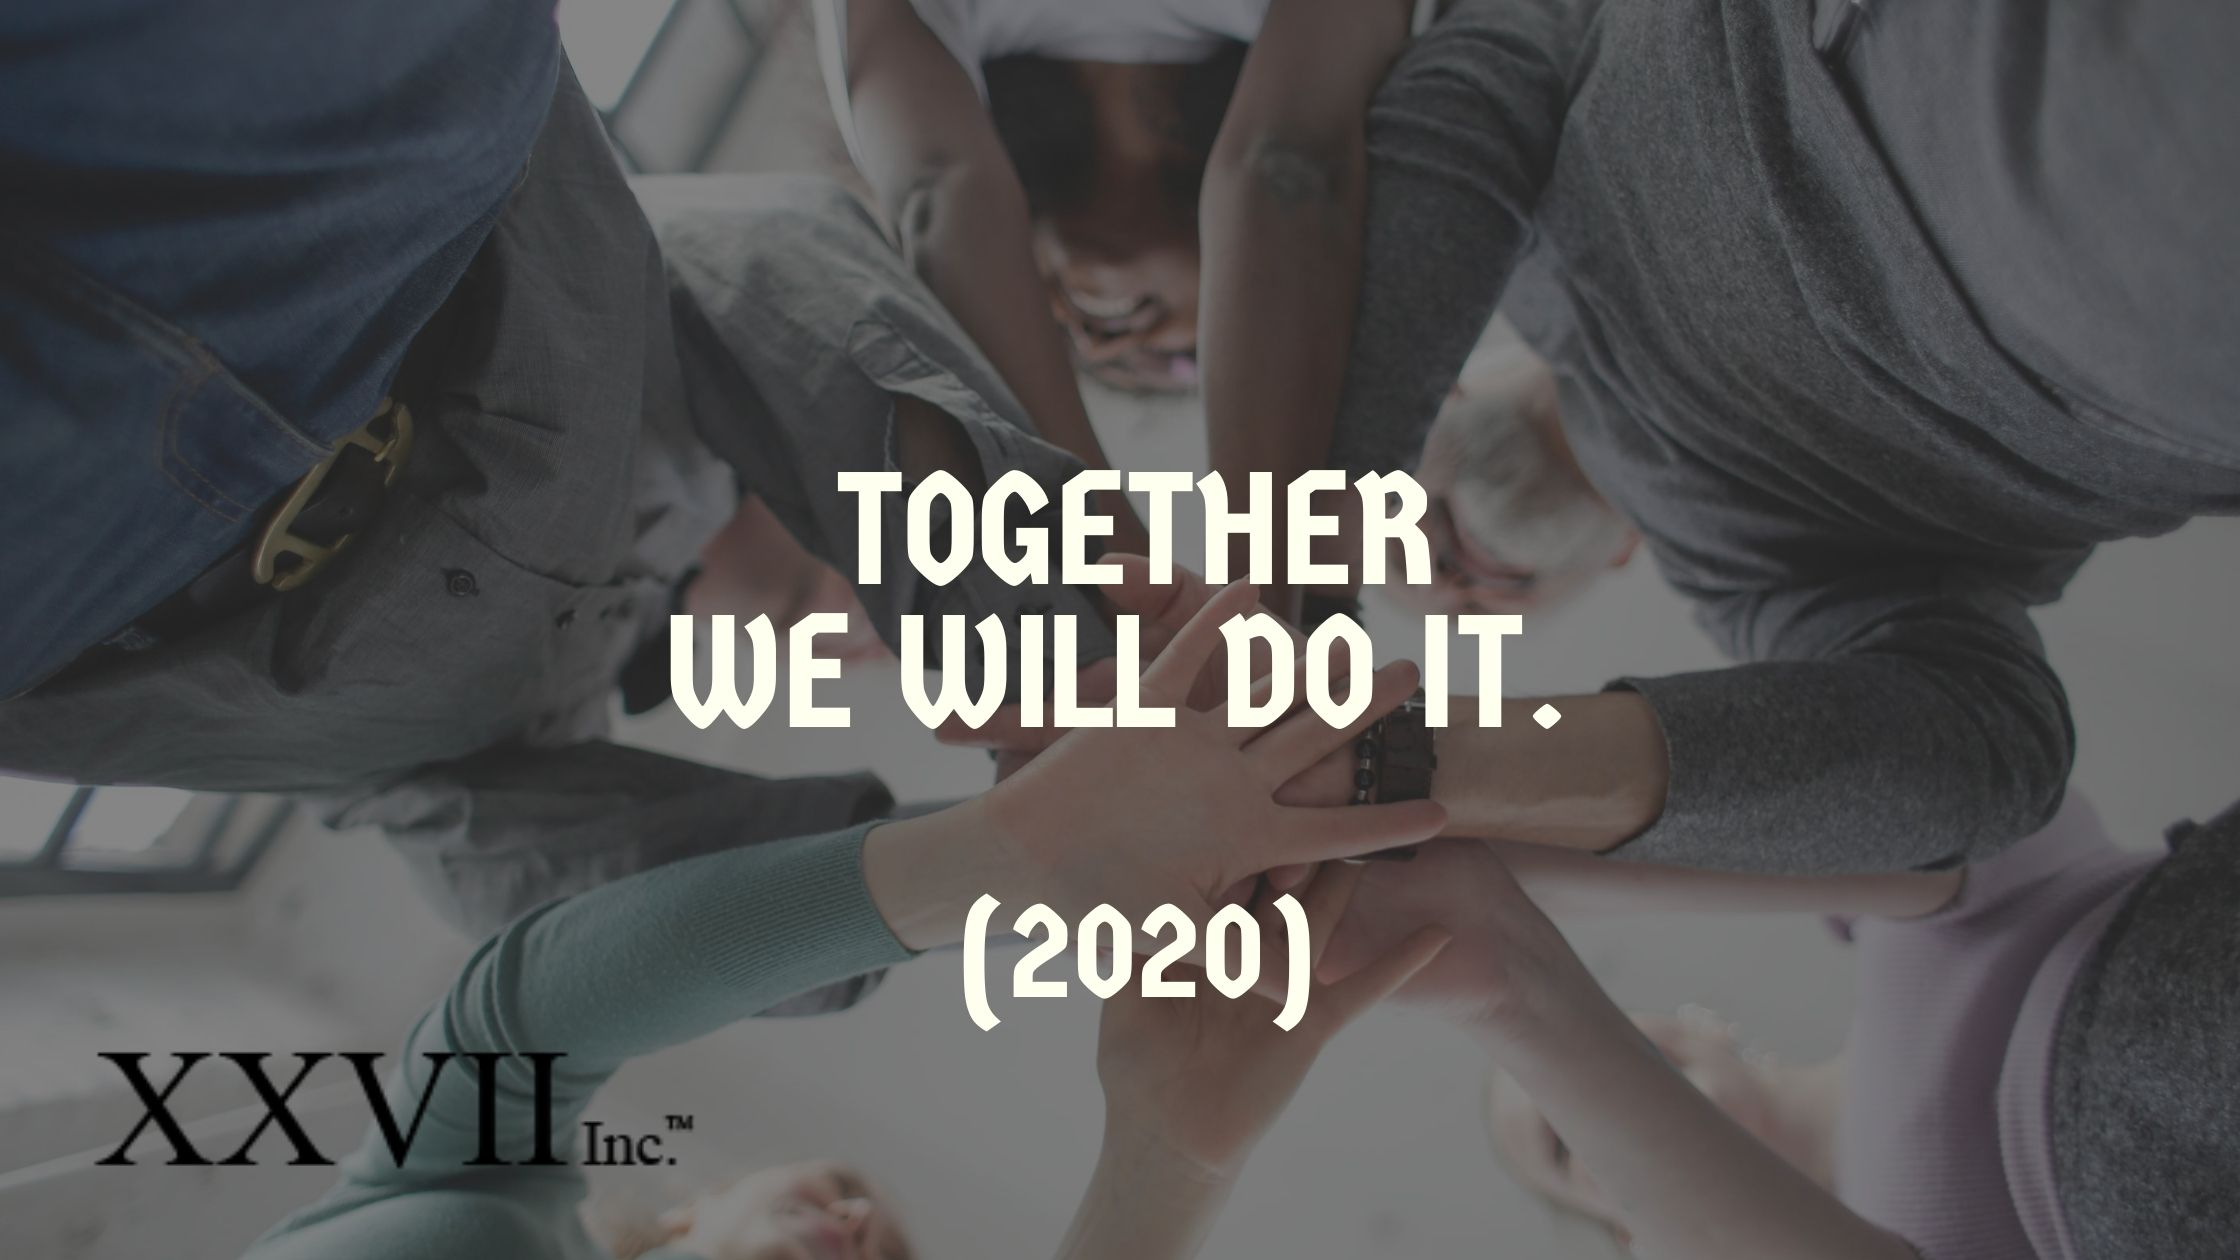 Together we will do it. (2020)